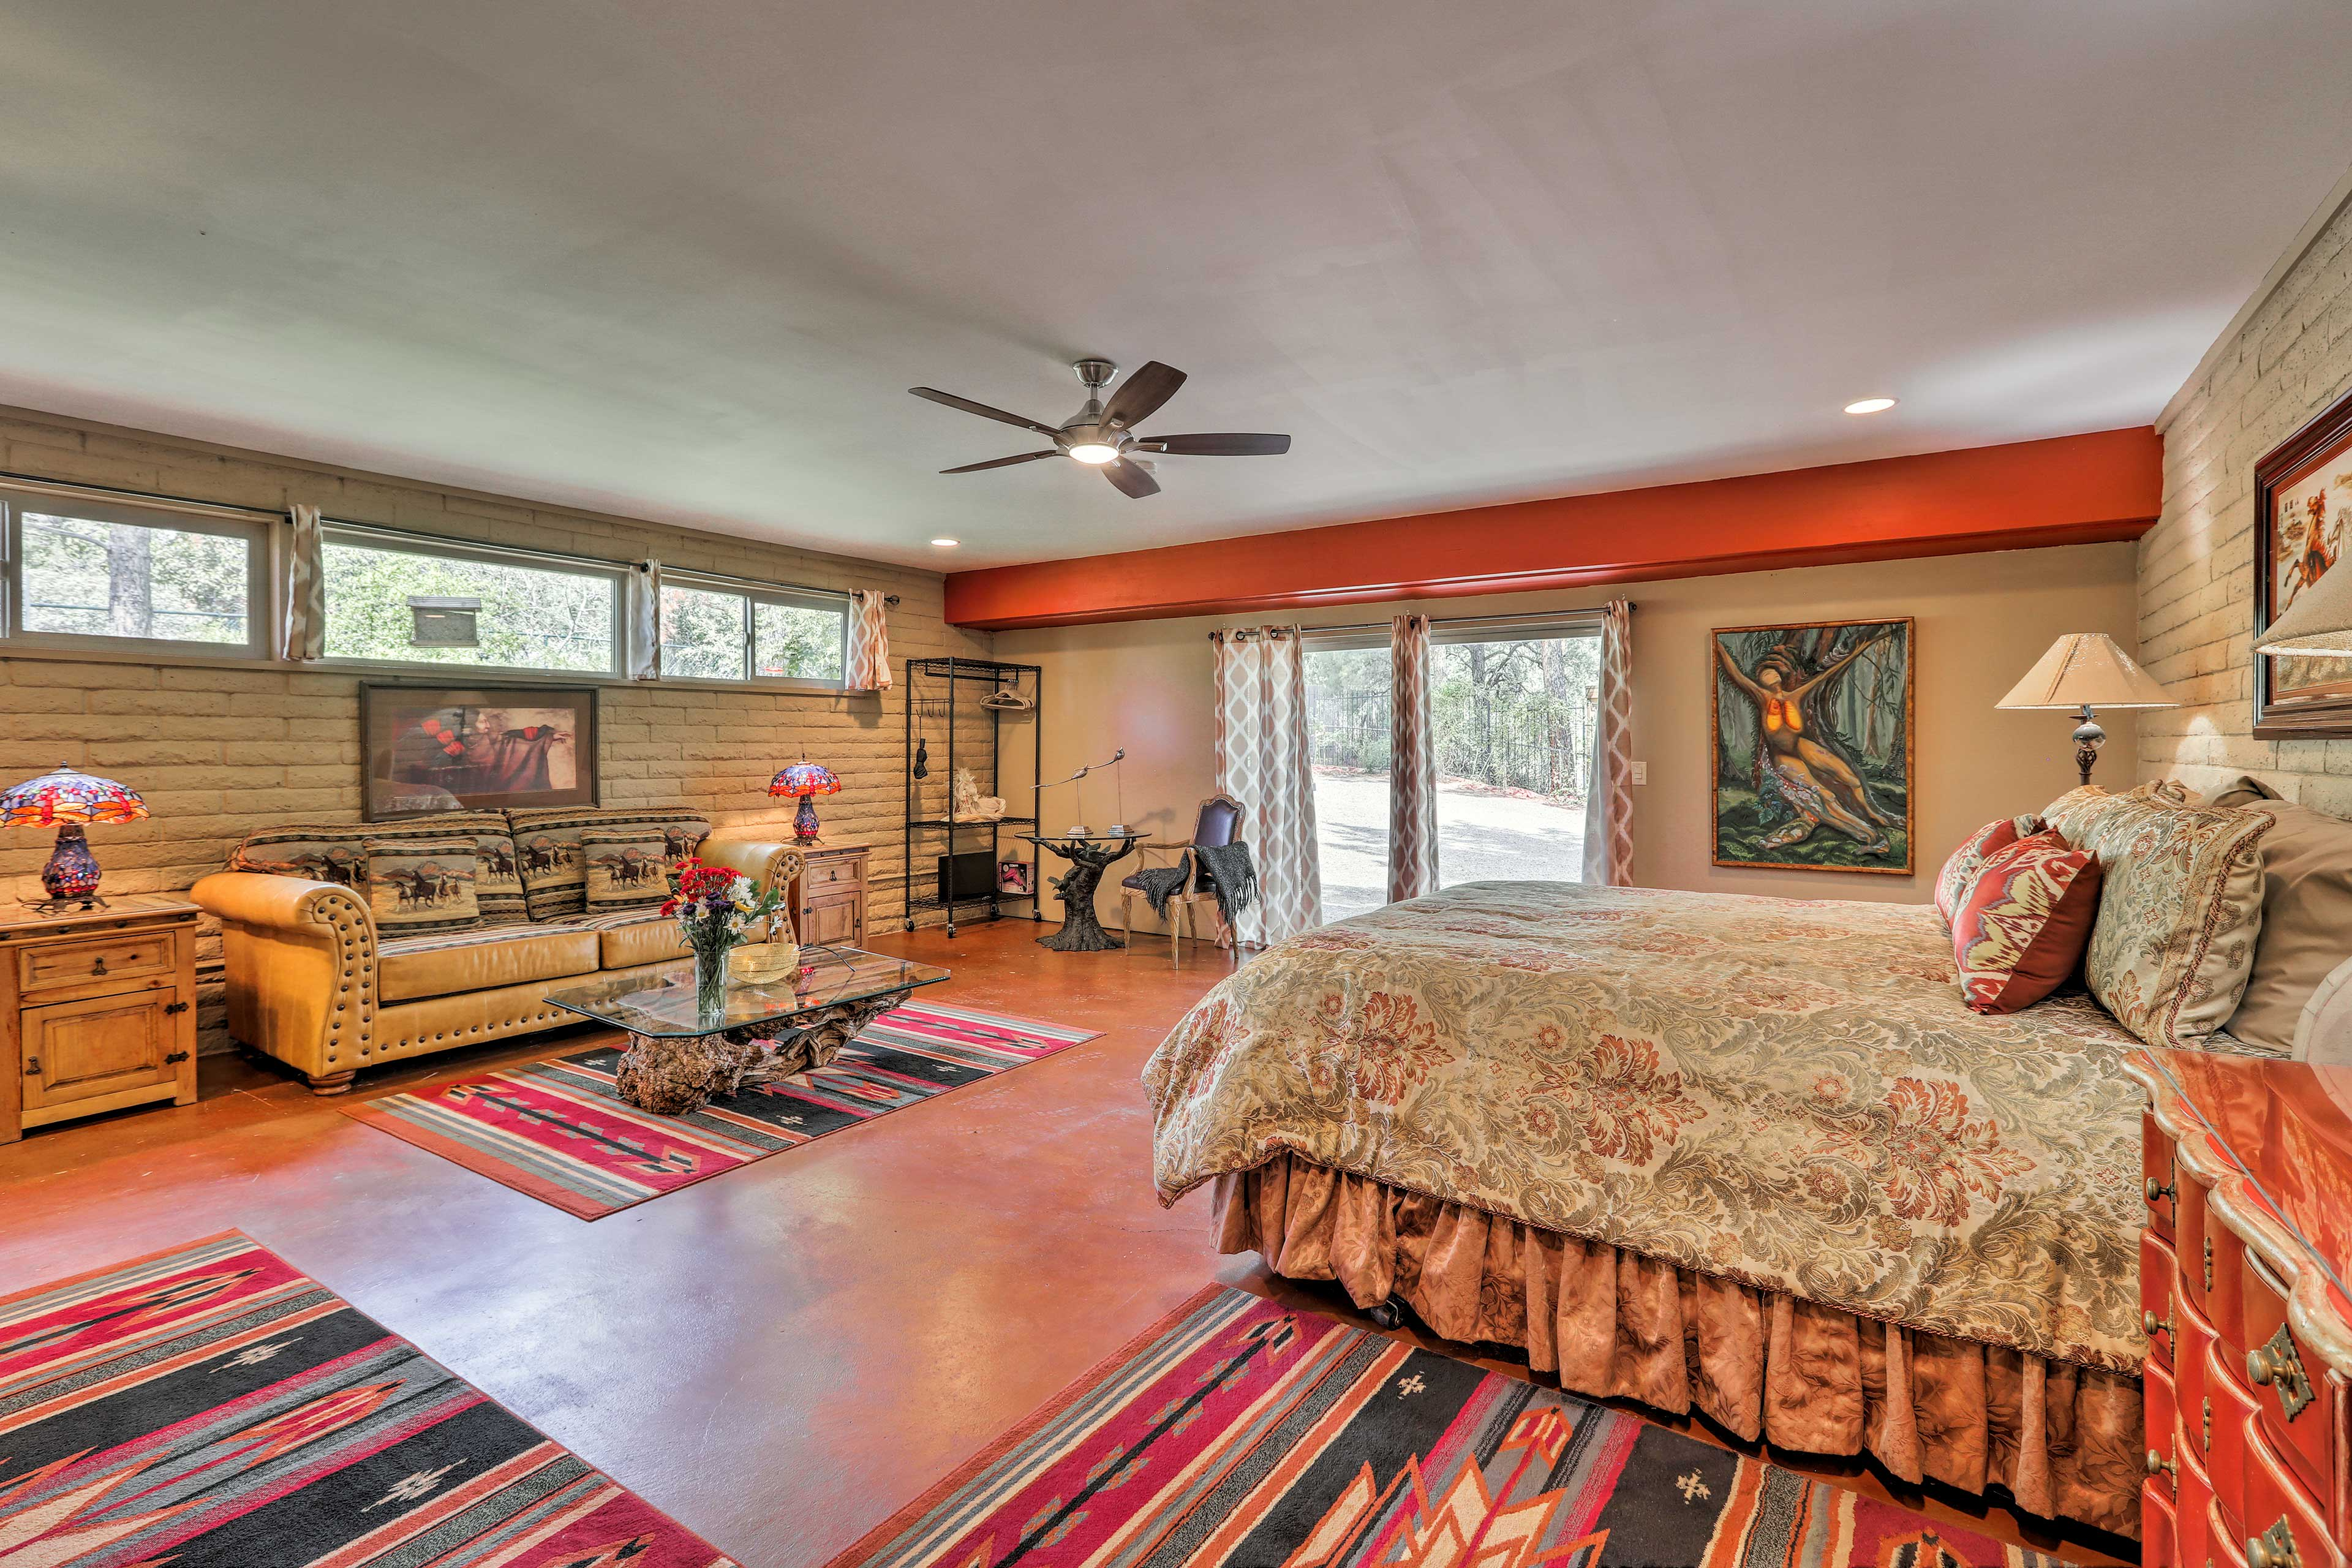 The colorful open space channels a Southwestern vibe.